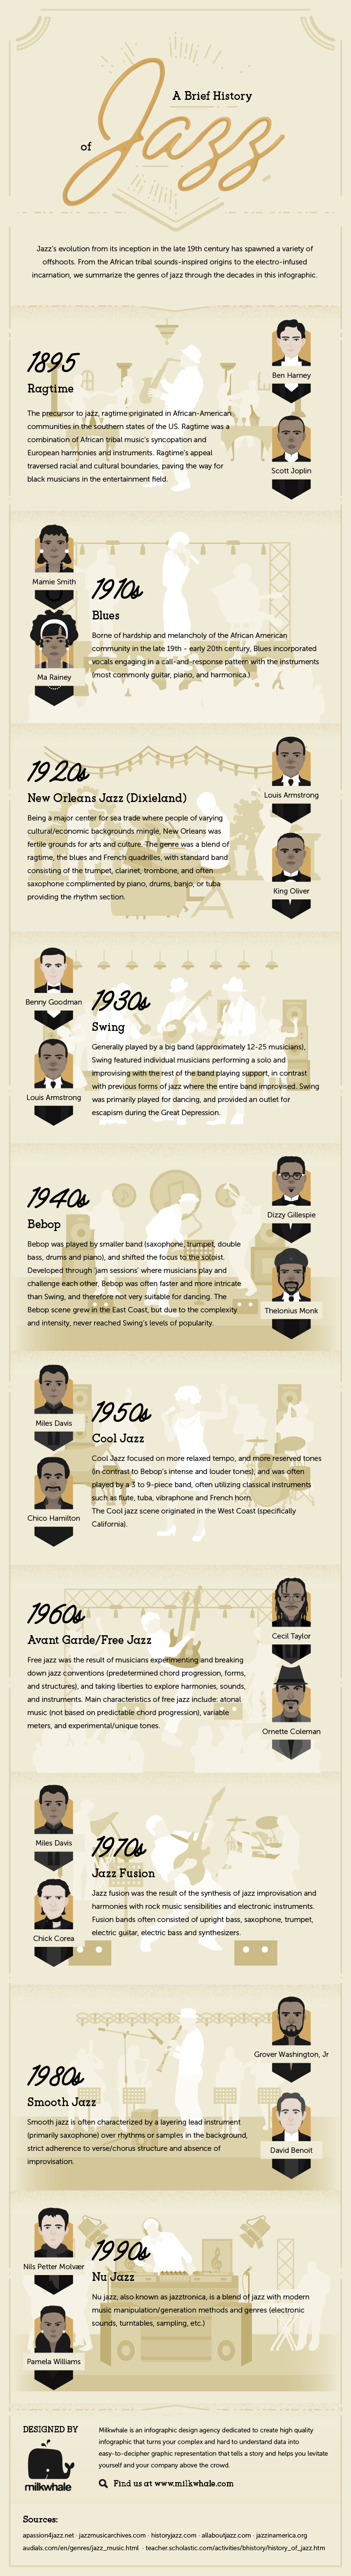 The Birth and Evolution of Jazz - Infographic